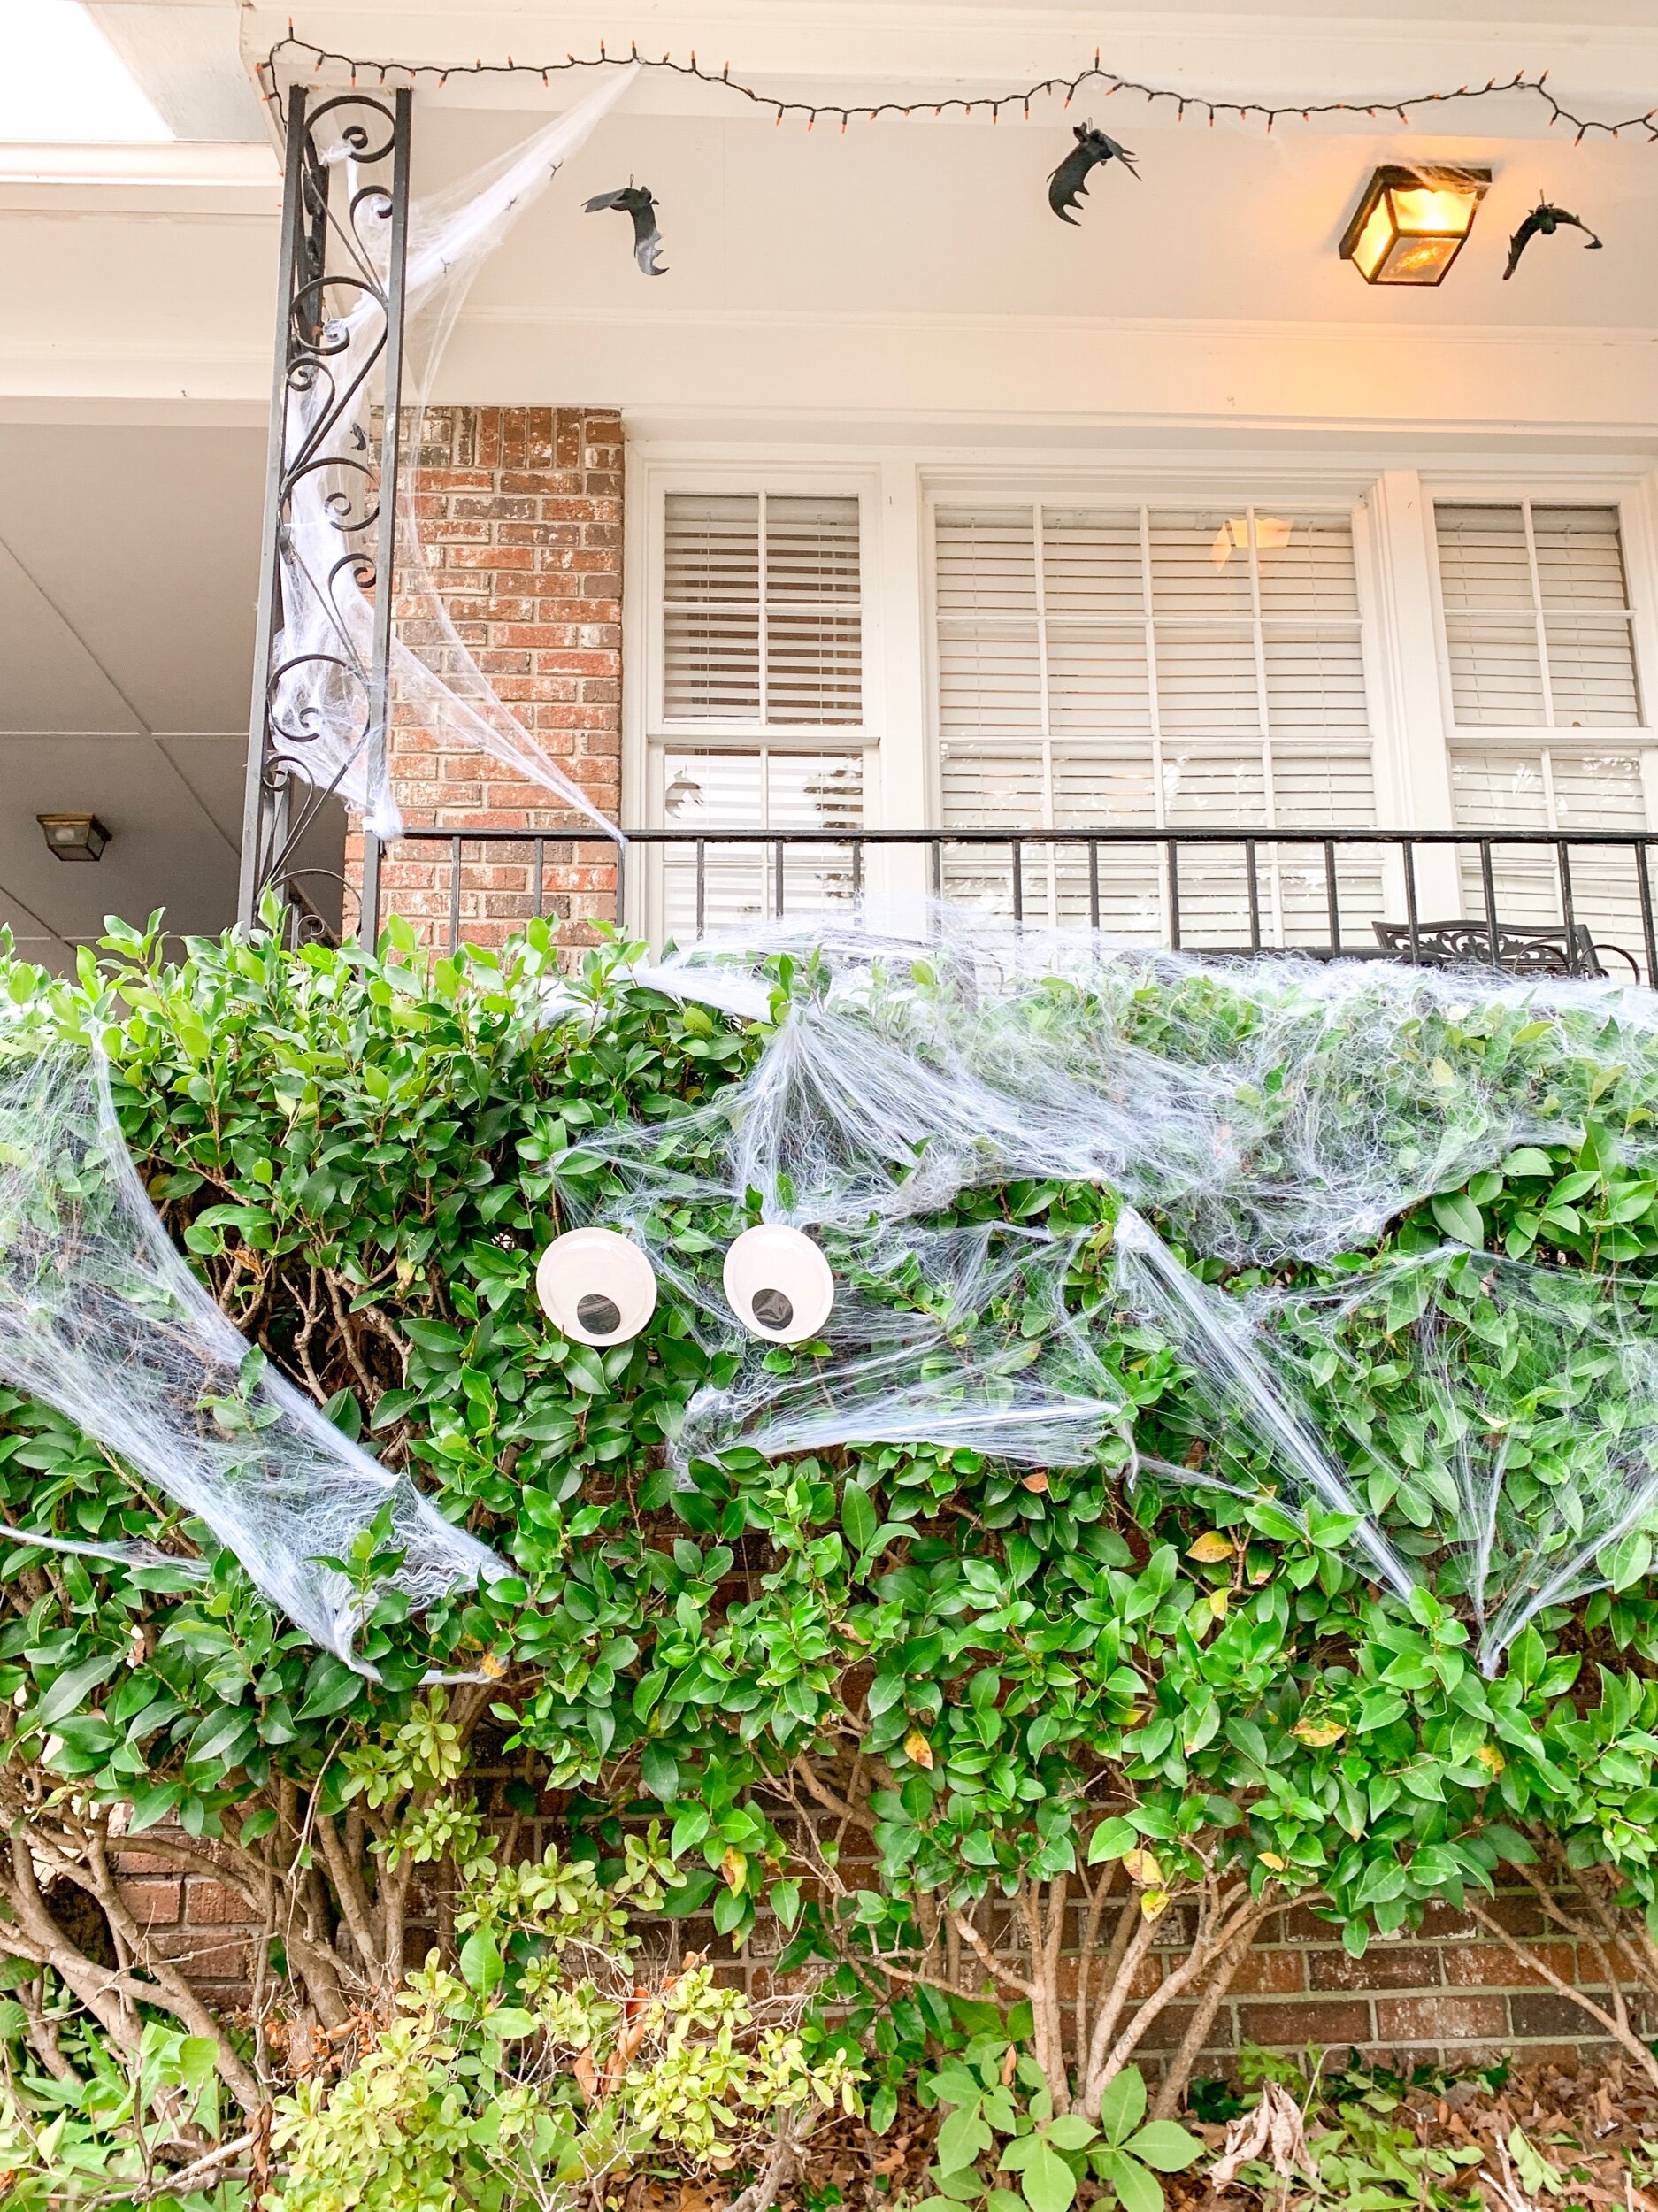 Got 5 plastic bats for $5. One pack of spider webbing covered everything outside. Everything. One set of googly glow in the dark eyes = $1. Love finding affordable Halloween decorations for only a dollar.